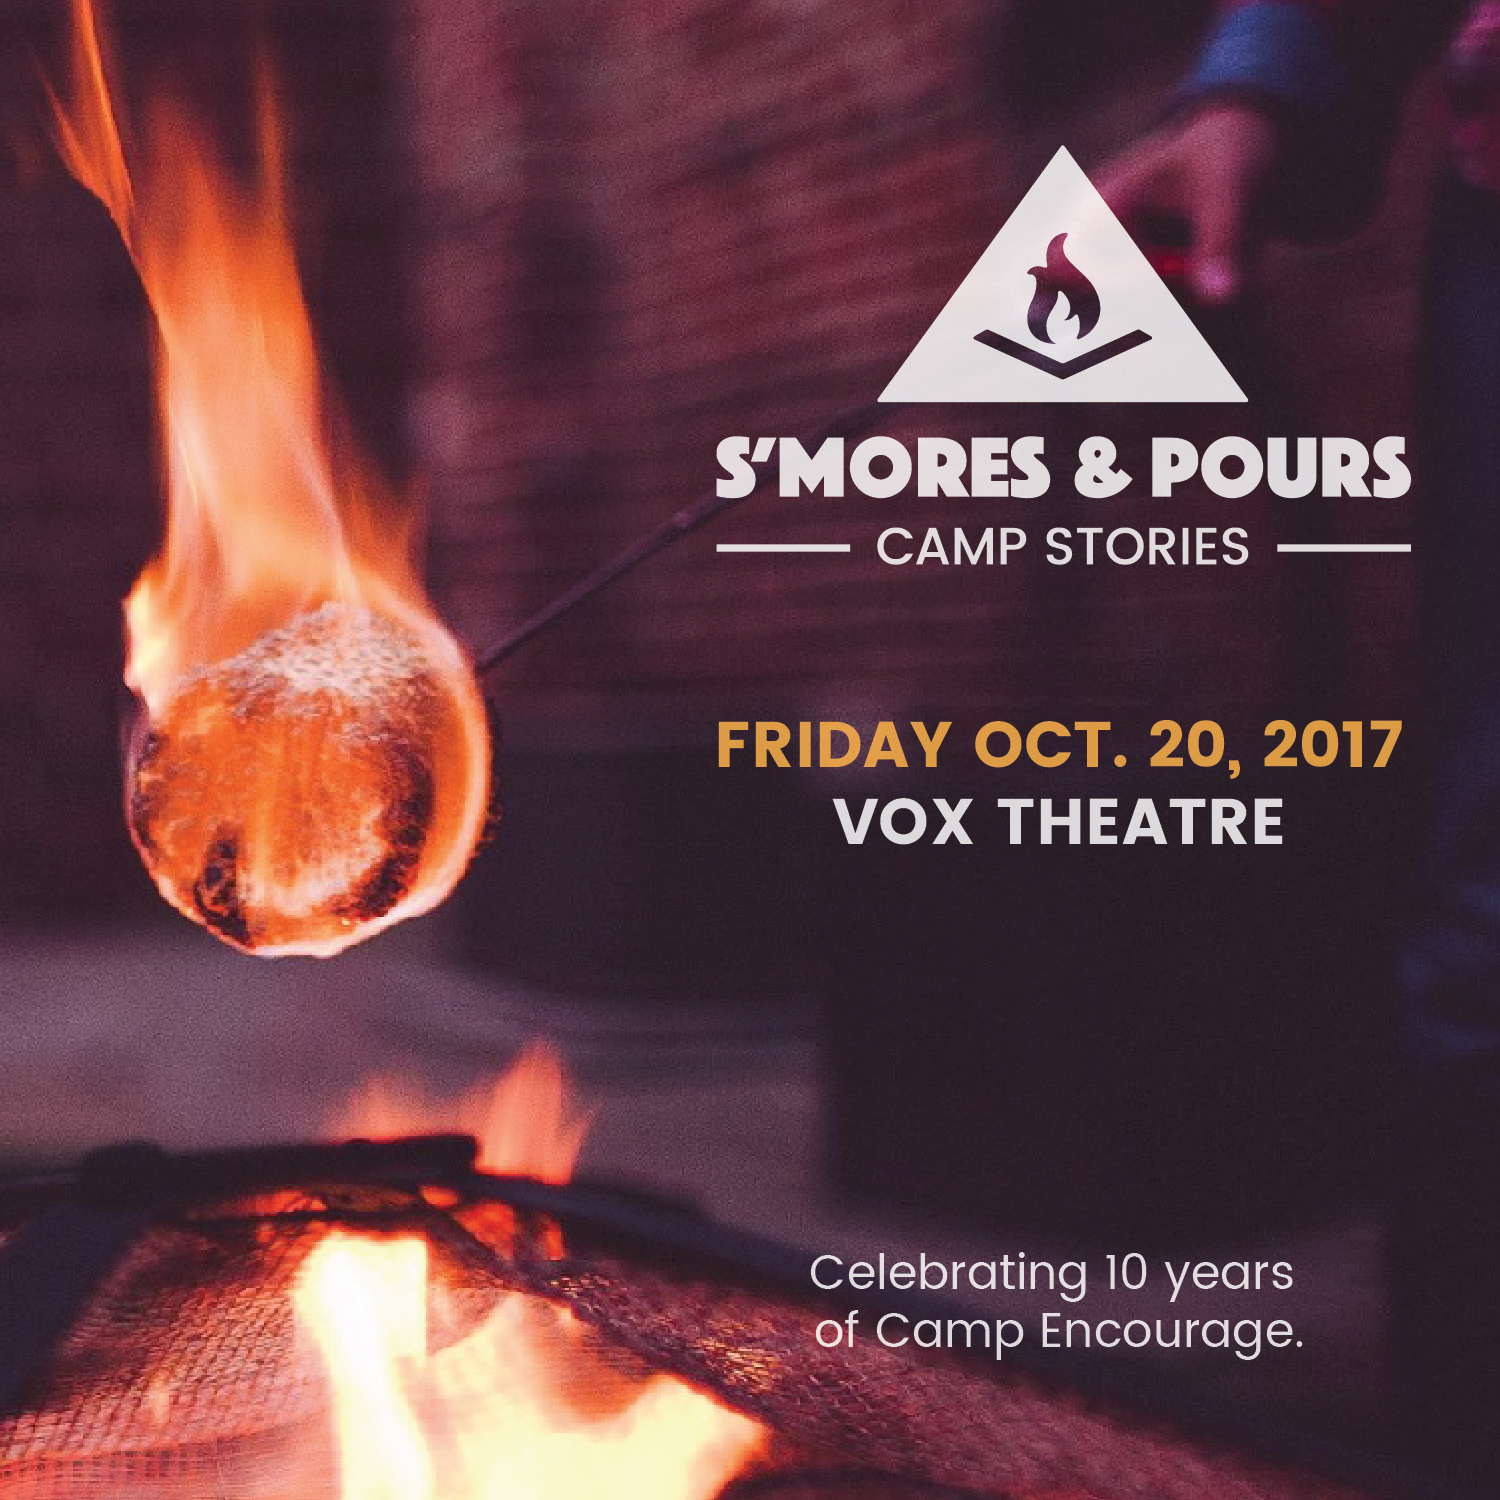 S'mores & Pours Camp Stories: Celebrating 10 years of Camp Encourage